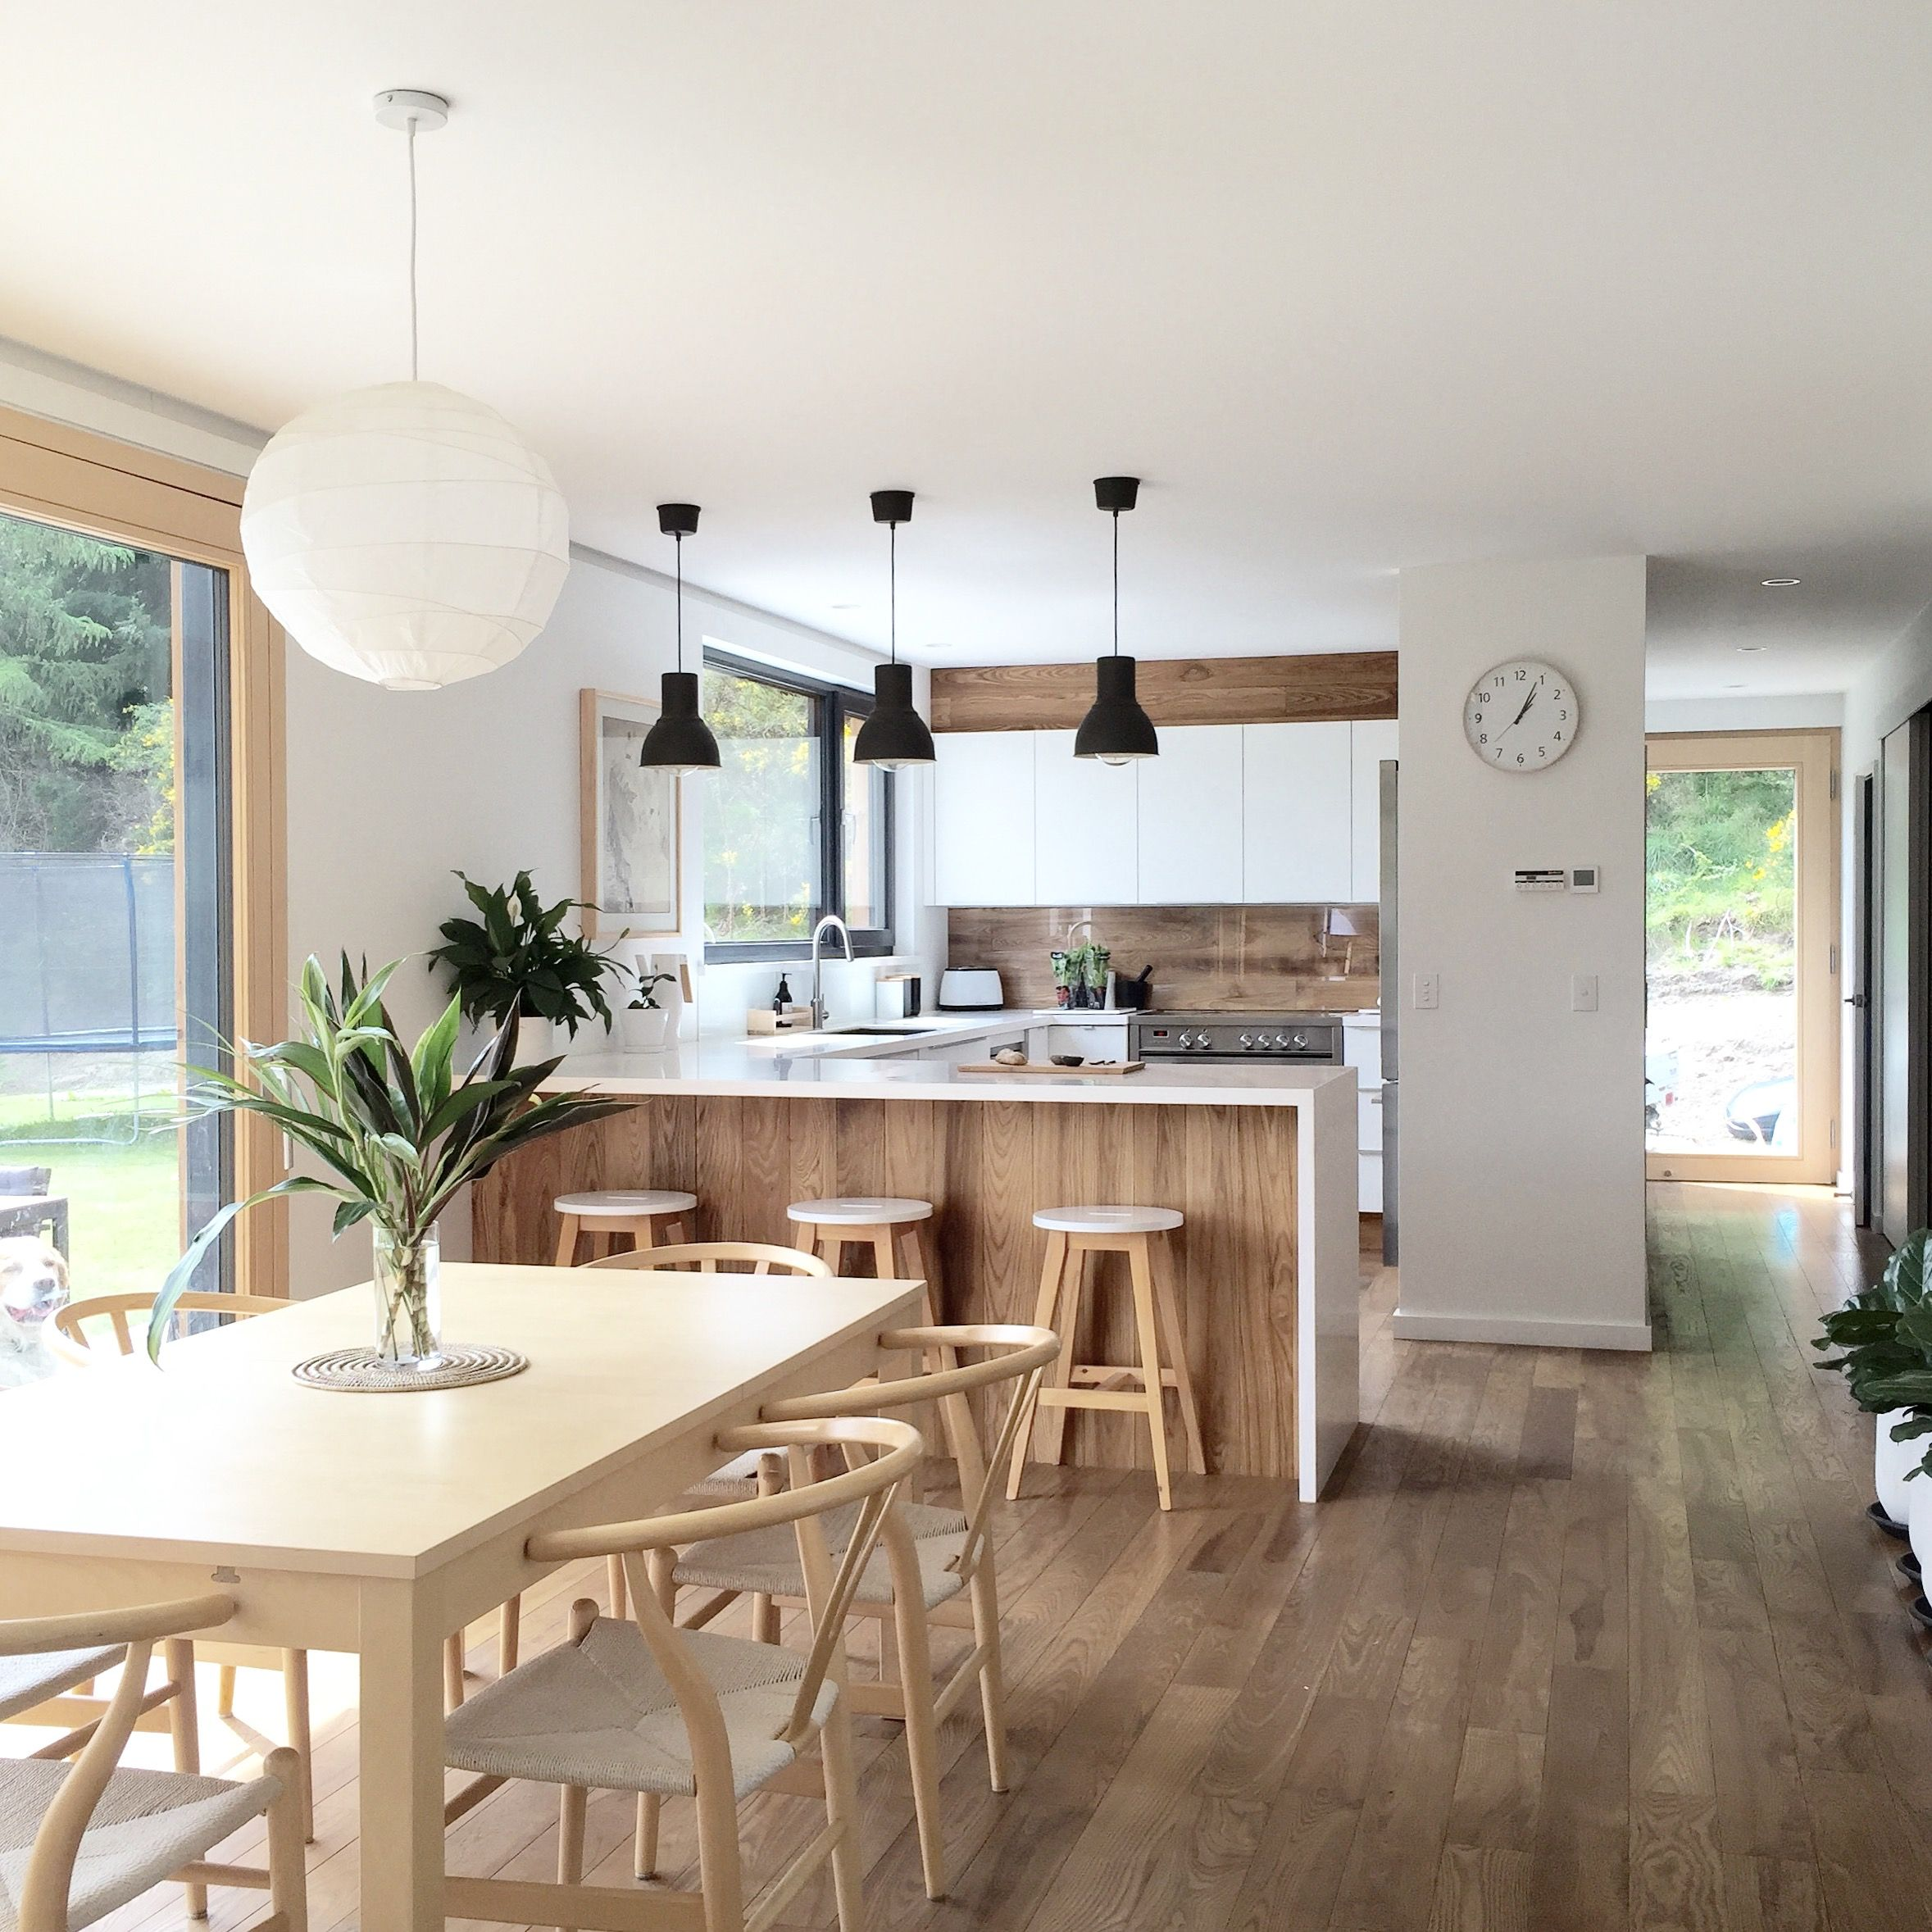 Taramea Passive House - New Zealand  Interior design kitchen